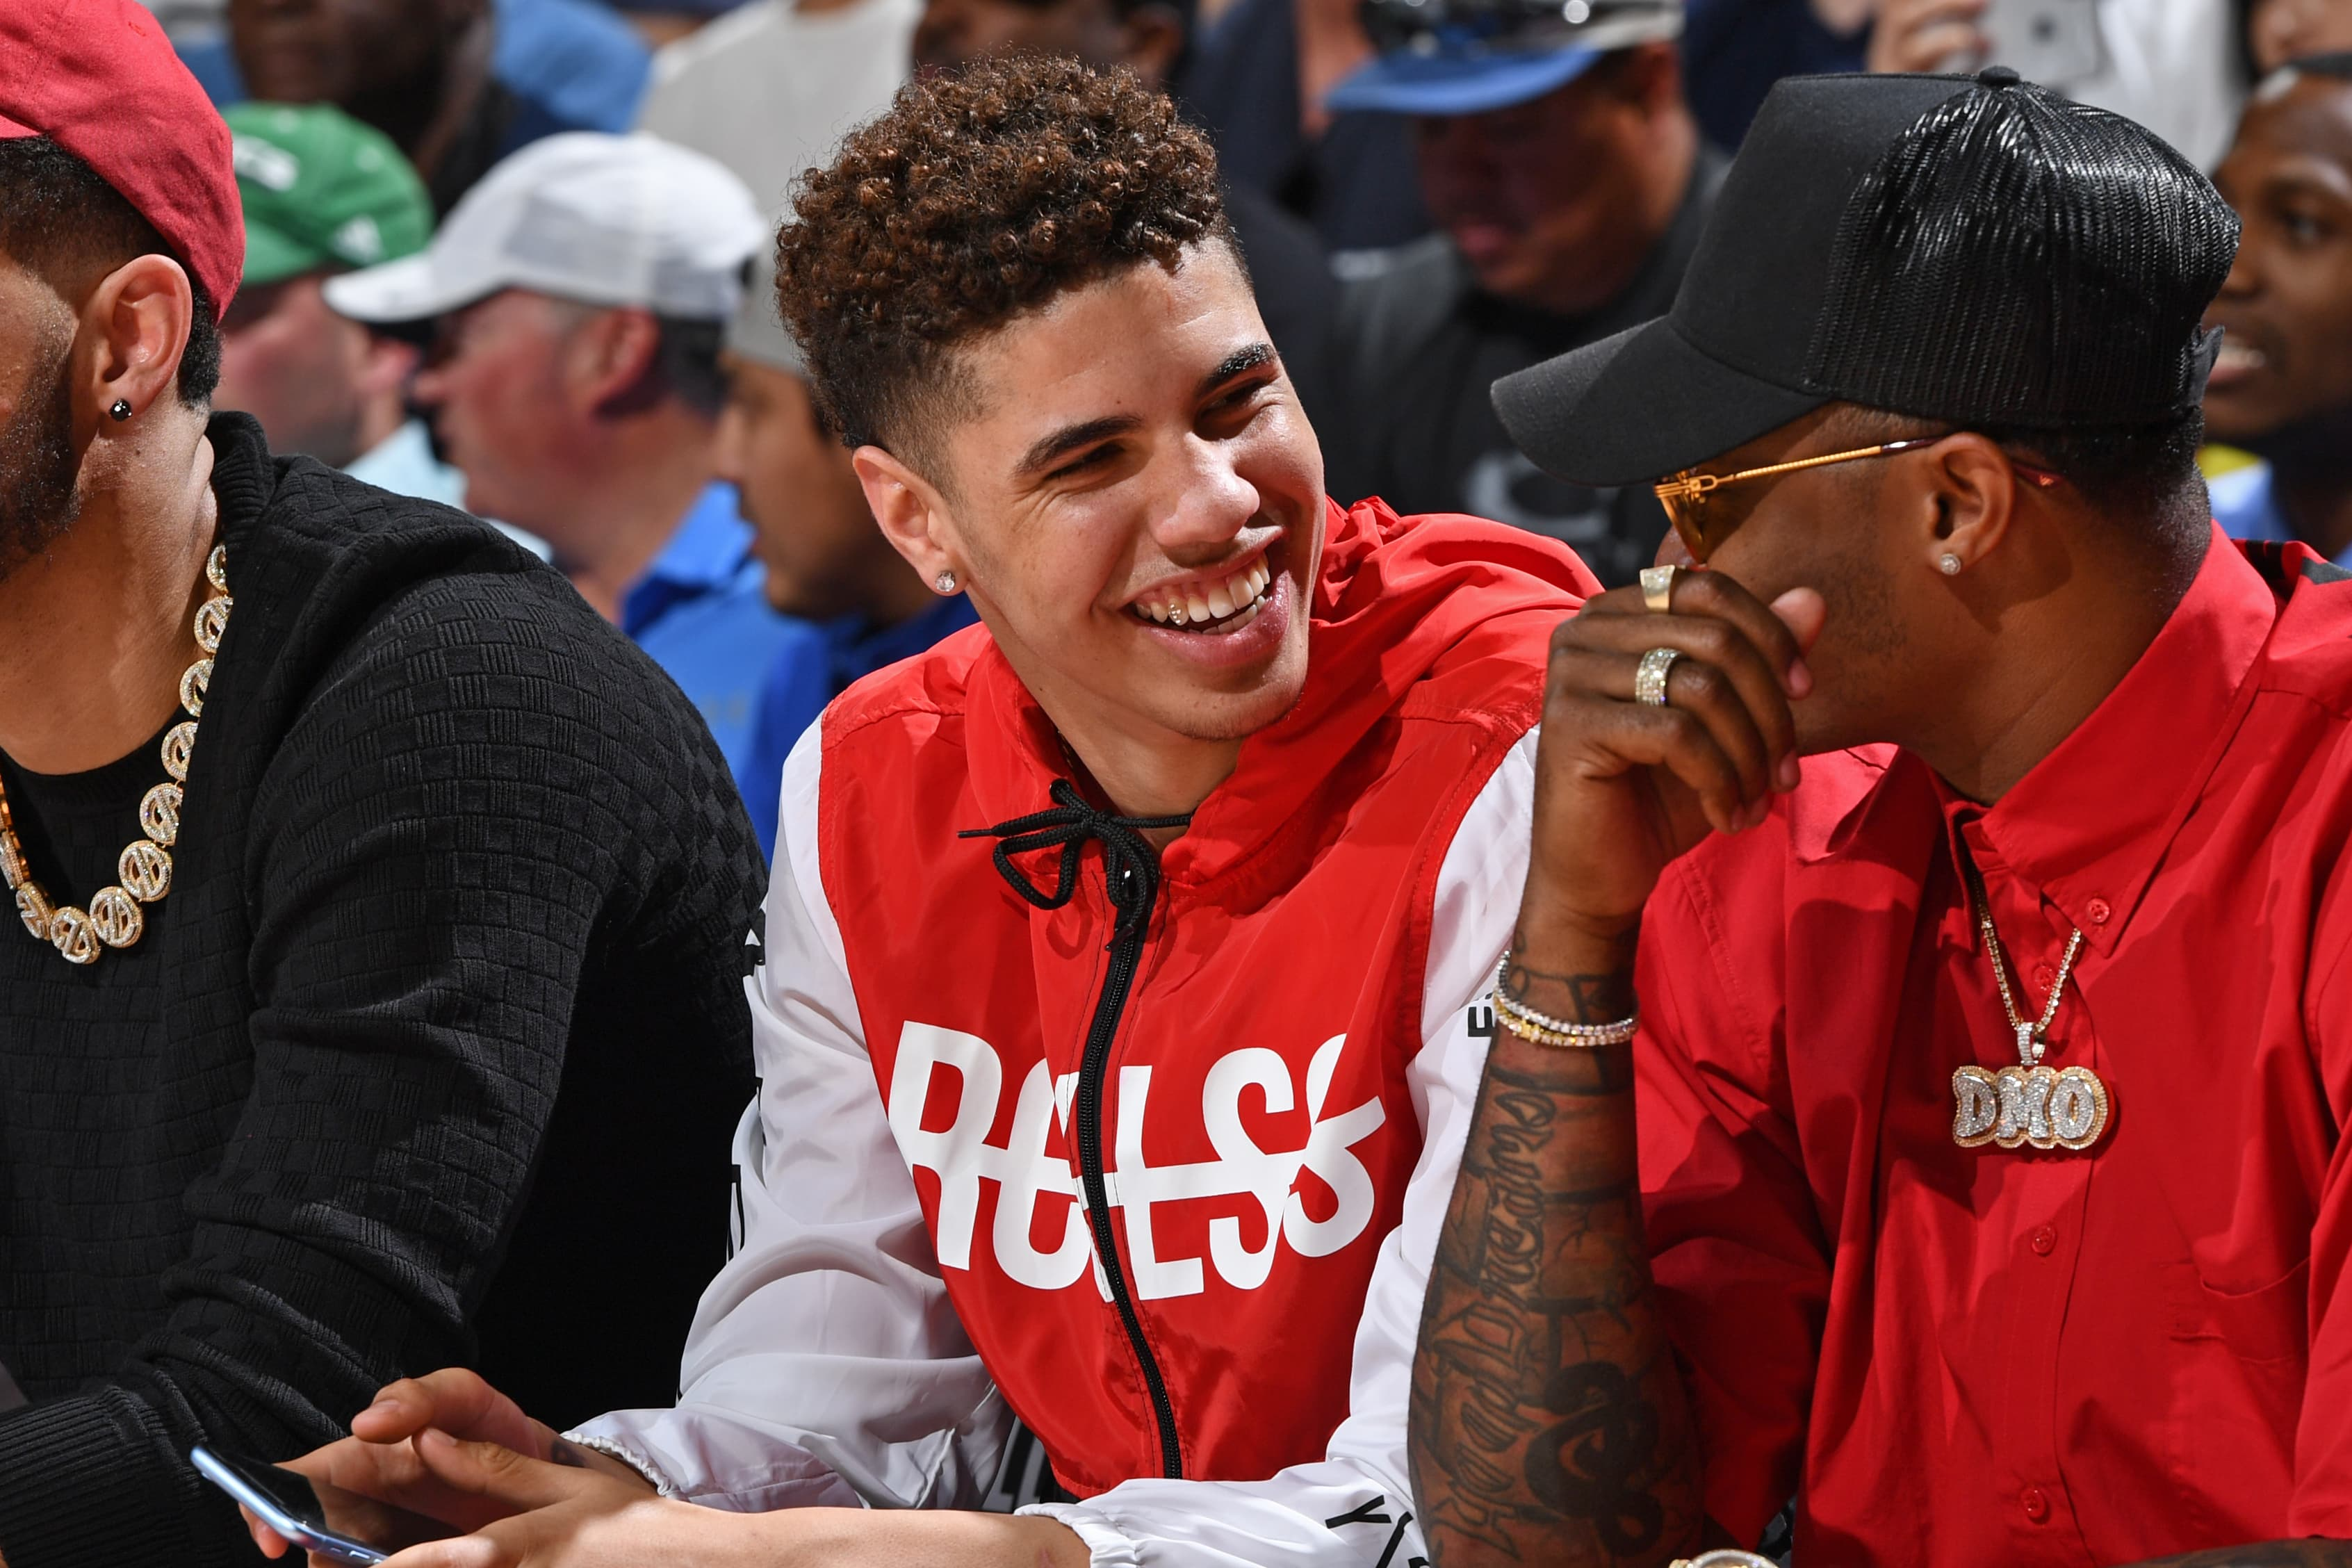 Las Vegas, NV - JULY 5: LaMelo Ball smiles during the game between the New York Knicks and the New Orleans Pelicans during Day 1 of the 2019 Las Vegas Summer League on July 5, 2019 at the Thomas & Mack Center in Las Vegas, Nevada. NOTE TO USER: User expressly acknowledges and agrees that, by downloading and or using this Photograph, user is consenting to the terms and conditions of the Getty Images License Agreement. Mandatory Copyright Notice: Copyright 2019 NBAE (Photo by Garrett Ellwood/NBAE via Getty Images)